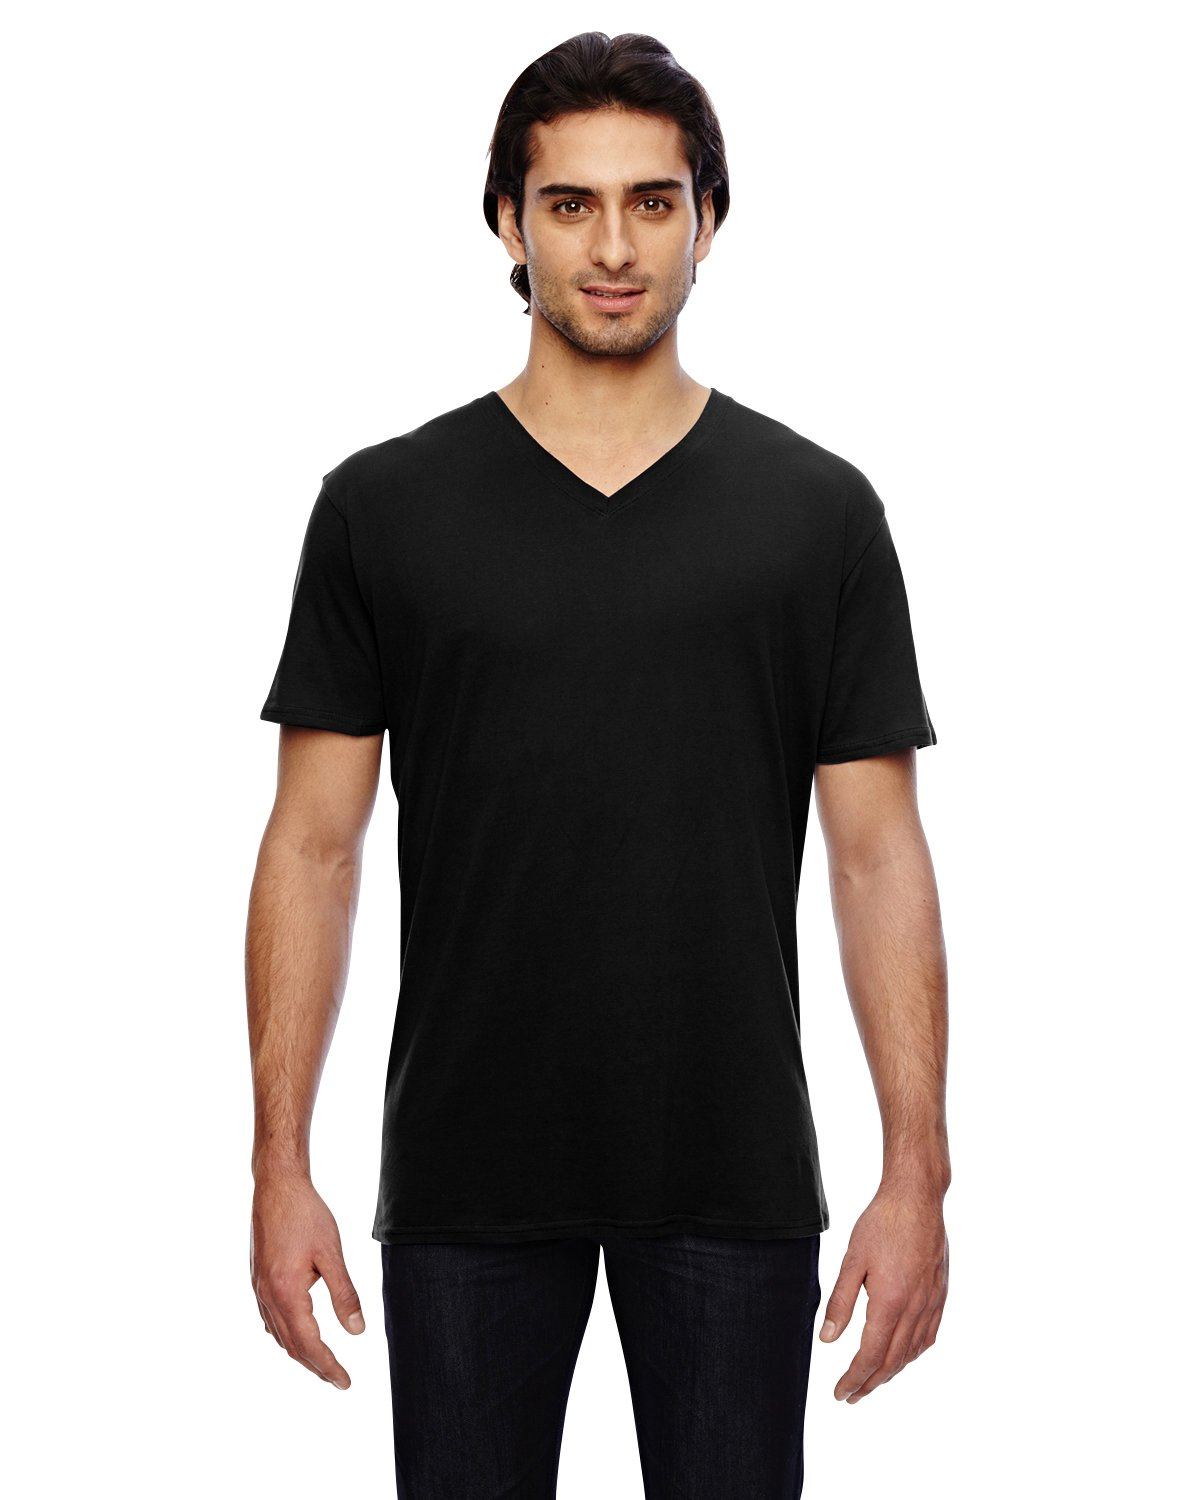 Anvil - 352 - 3.2 oz. Featherweight Short-Sleeve V-Neck T-Shirt